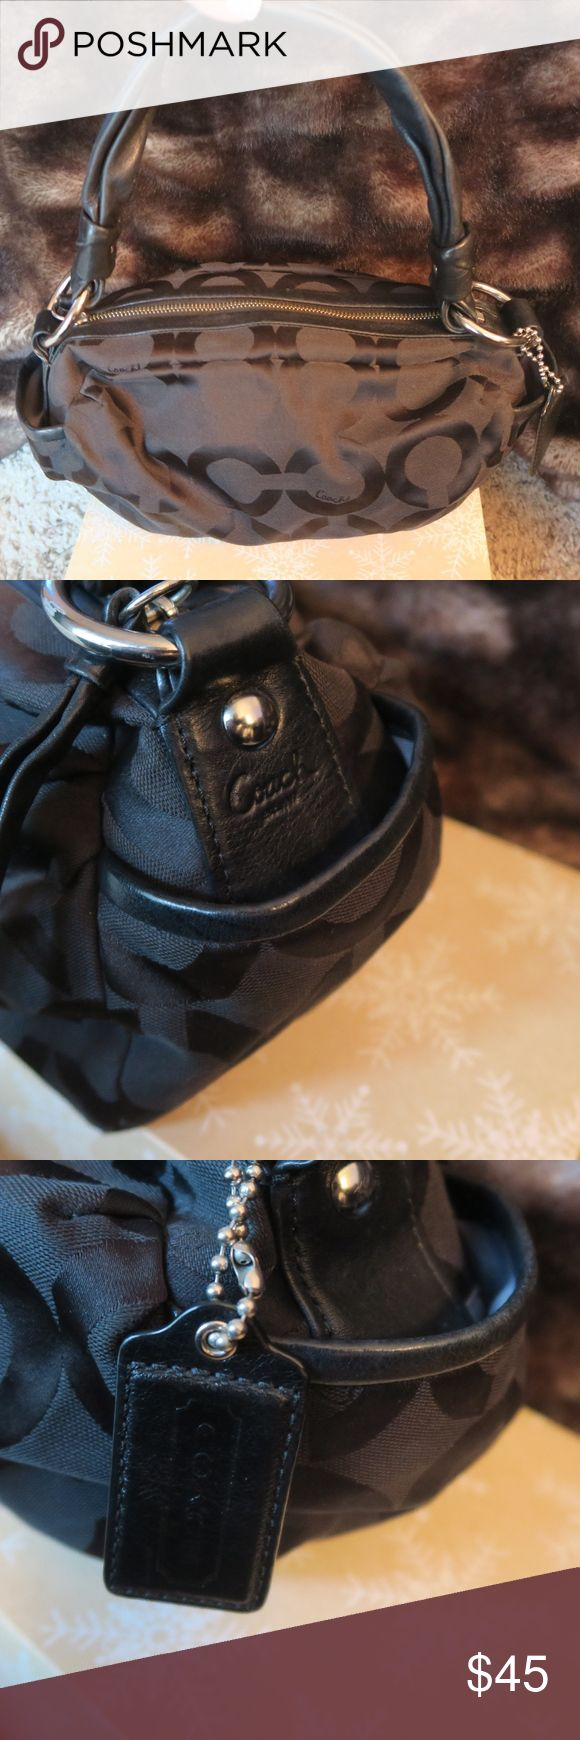 Black Coach Handbag Black coach bag. Material is canvas but strap is leather. Silver metal details. Bag is authentic and I am it's first and only owner. Great condition. Inside of bag pulled out in photos 5 & 6 so you can see how it looks. Hardly any wear shown. Comes with little Coach keychain. Strap is 23 inches long from bottom of metal loop to the other metal loop. Bag is 15 inches long by 6 inches wide and 6 inches deep. Make me a reasonable offer. Willing to work on the price. NO…